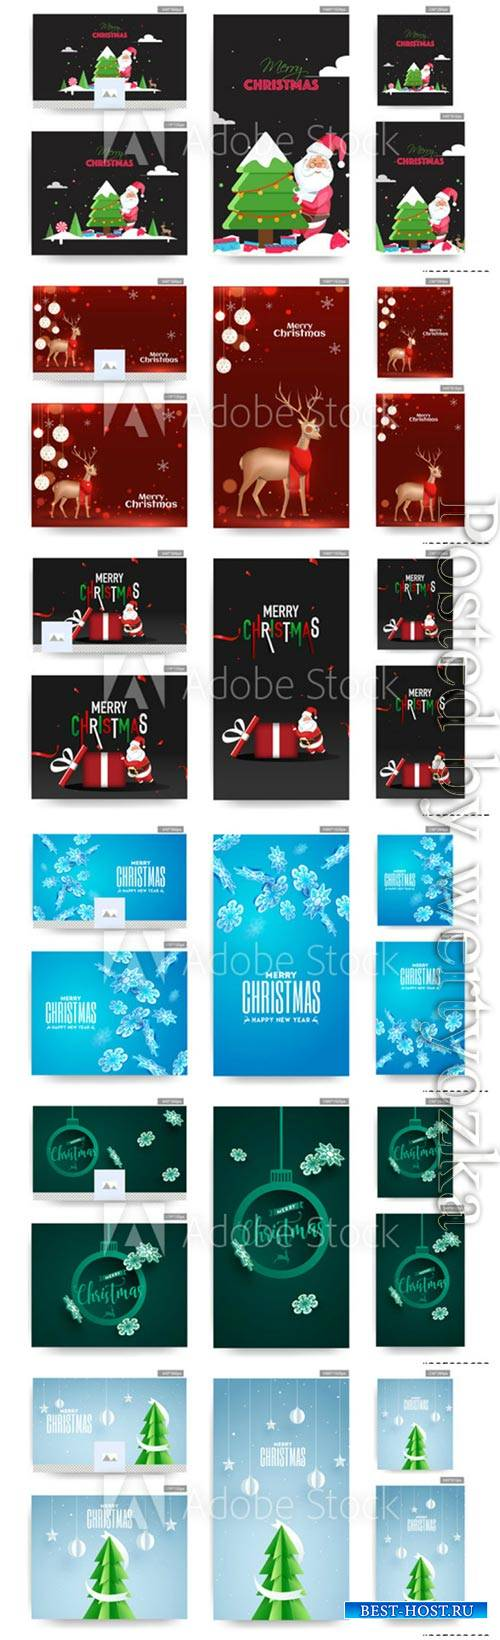 Social Media Christmas poster and template vector design